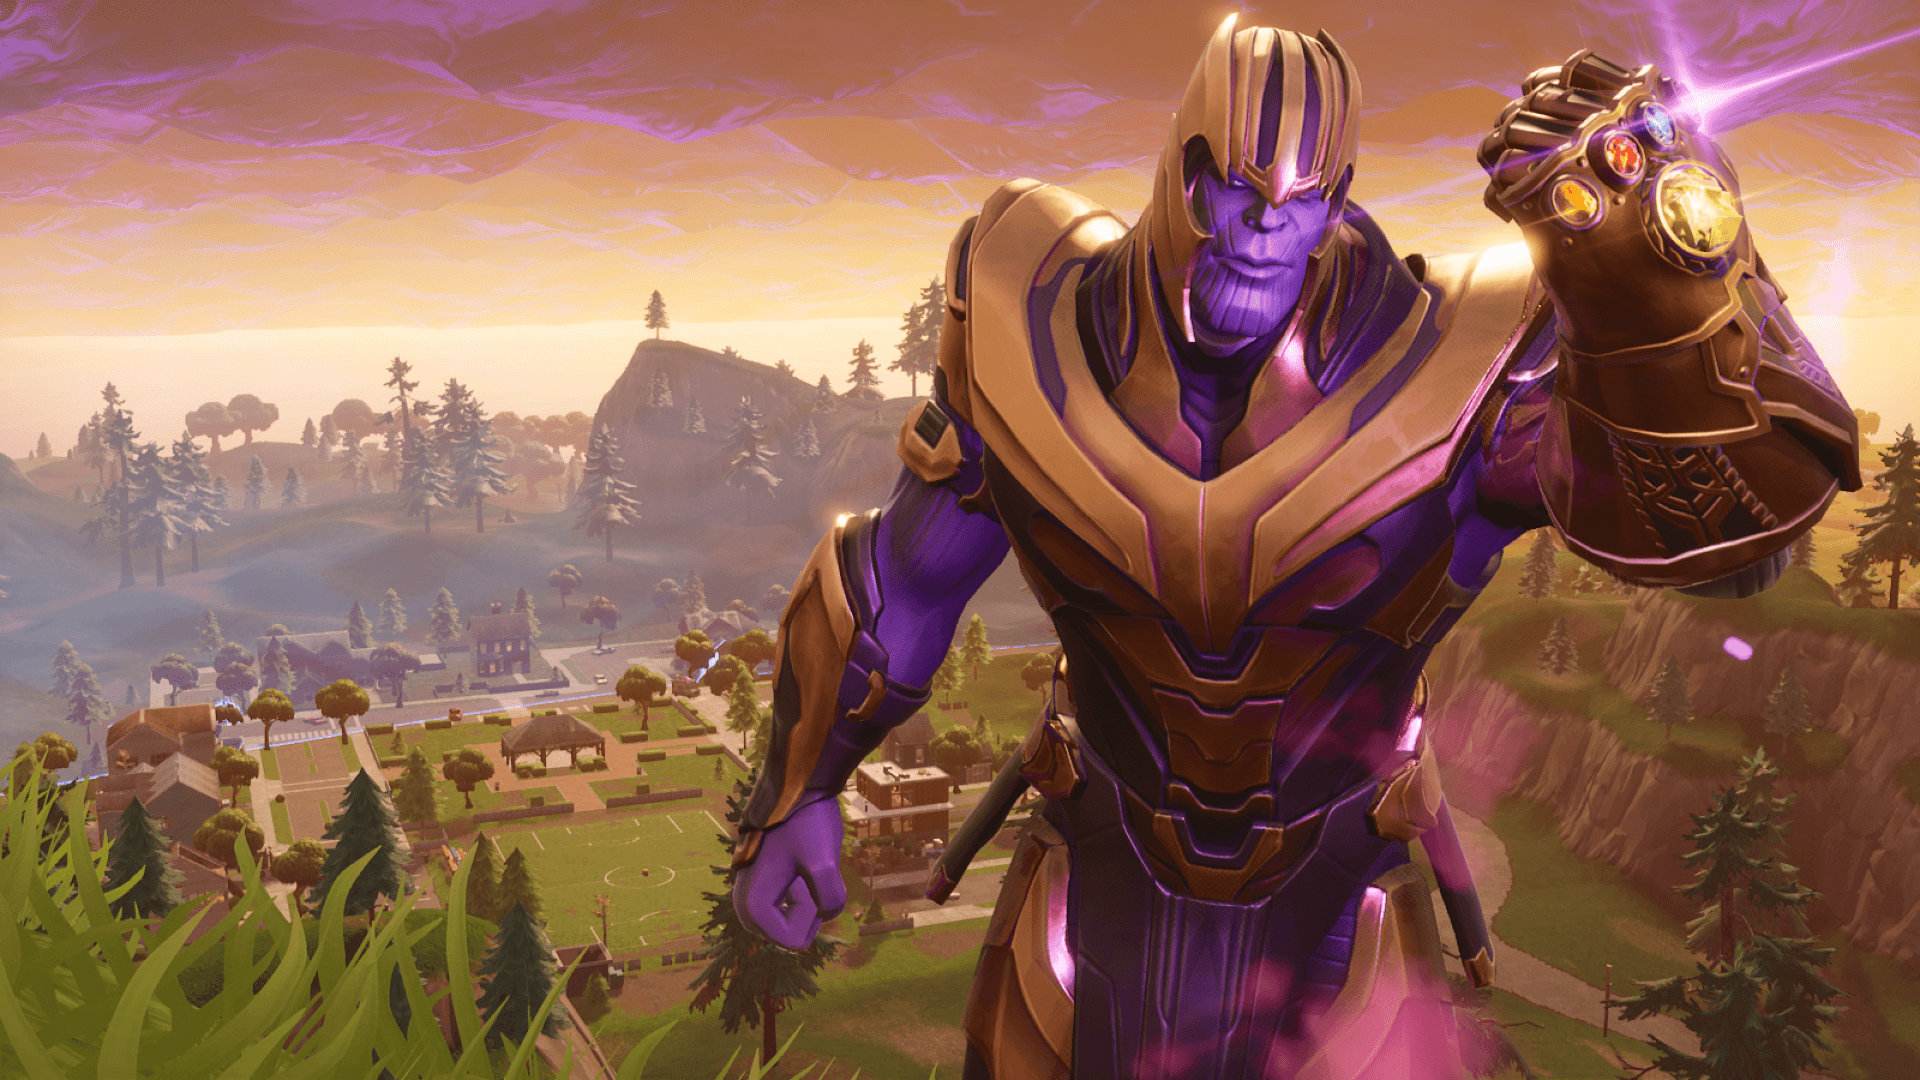 Destiny arrives again in Fortnite